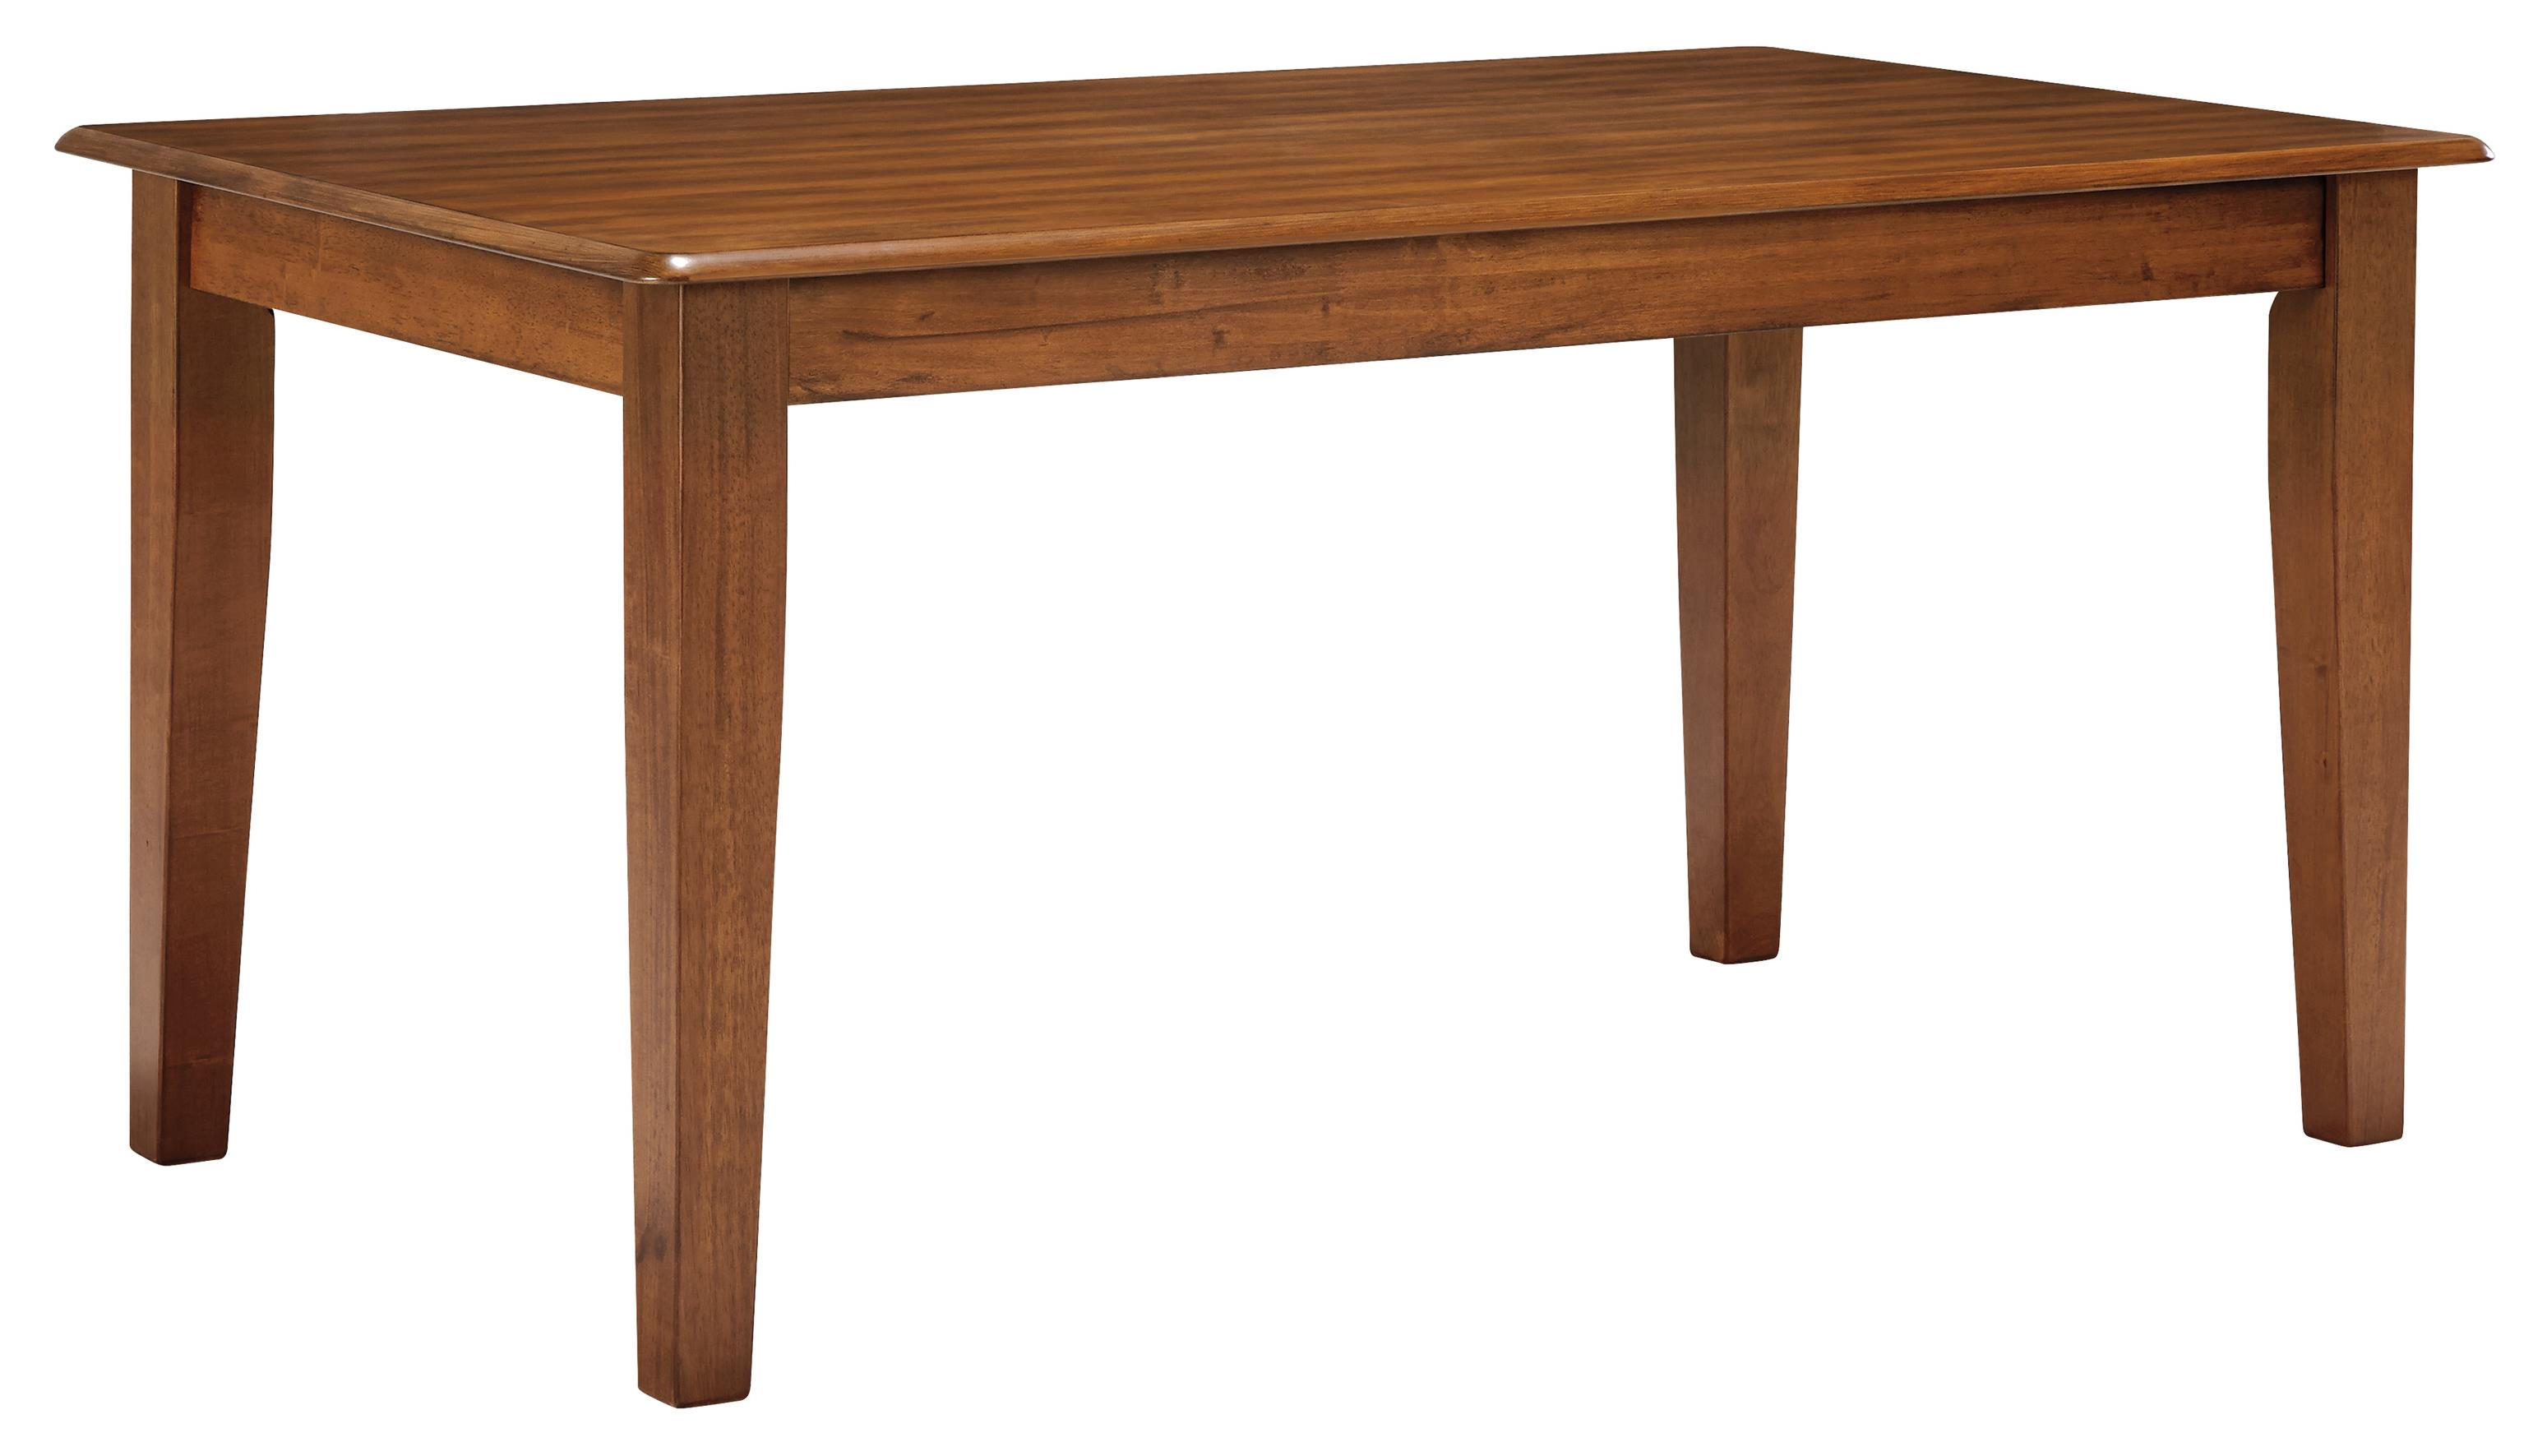 Berringer Dining Table by Ashley Furniture at HomeWorld Furniture